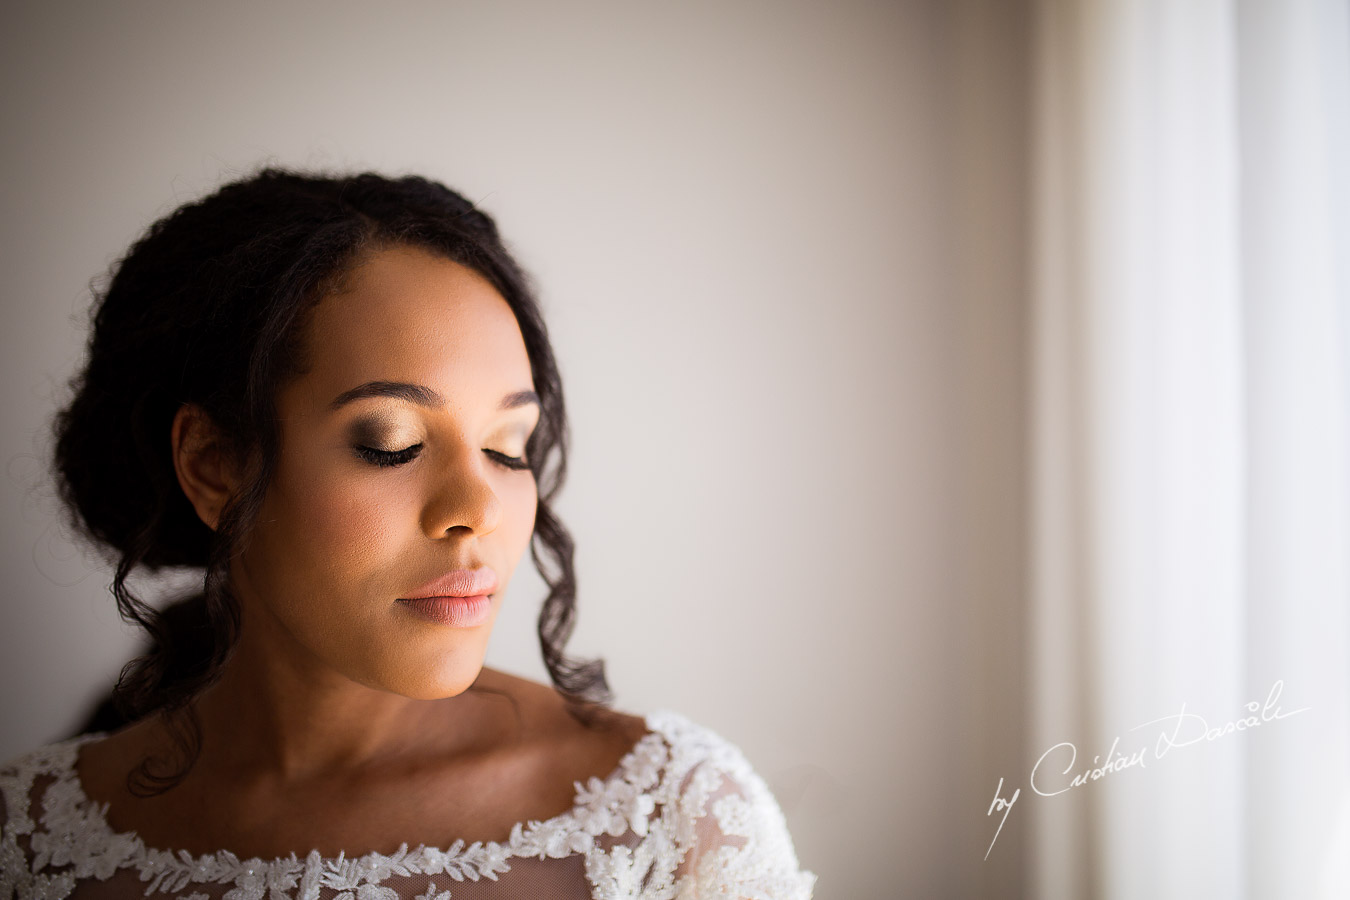 Beautiful bridal portrait captured at a wedding at Minthis Hills in Cyprus, by Cristian Dascalu.